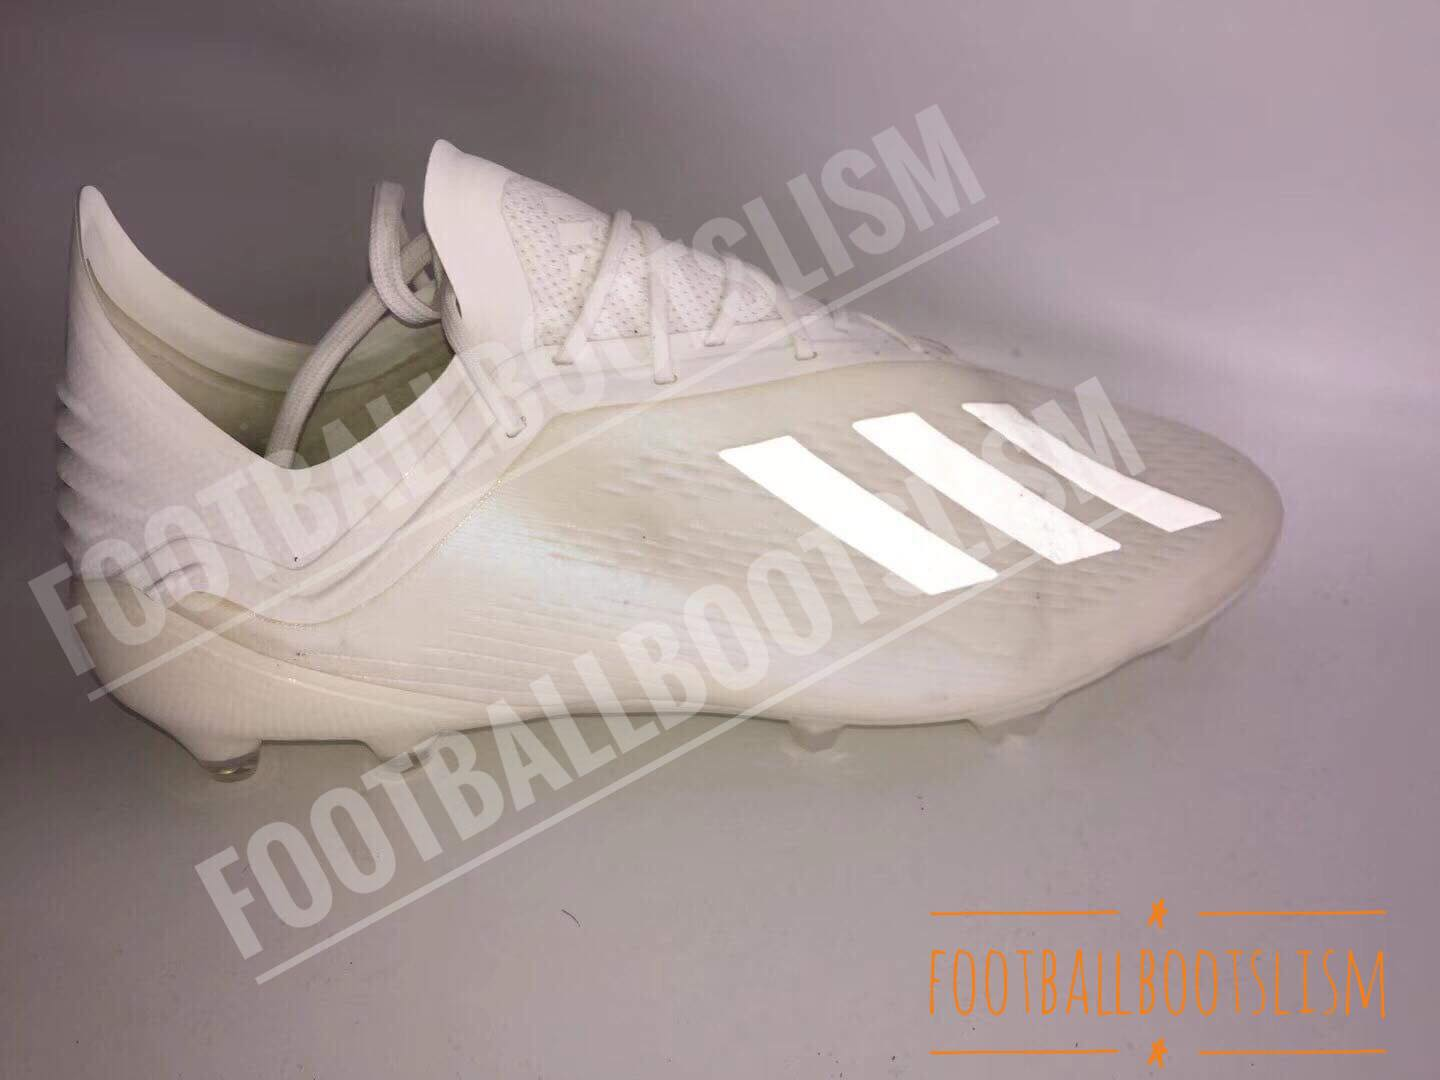 new style a44de 1c104 Adidas X 18.1 Boot Spectral Mode Pack Cleats - Whiteout